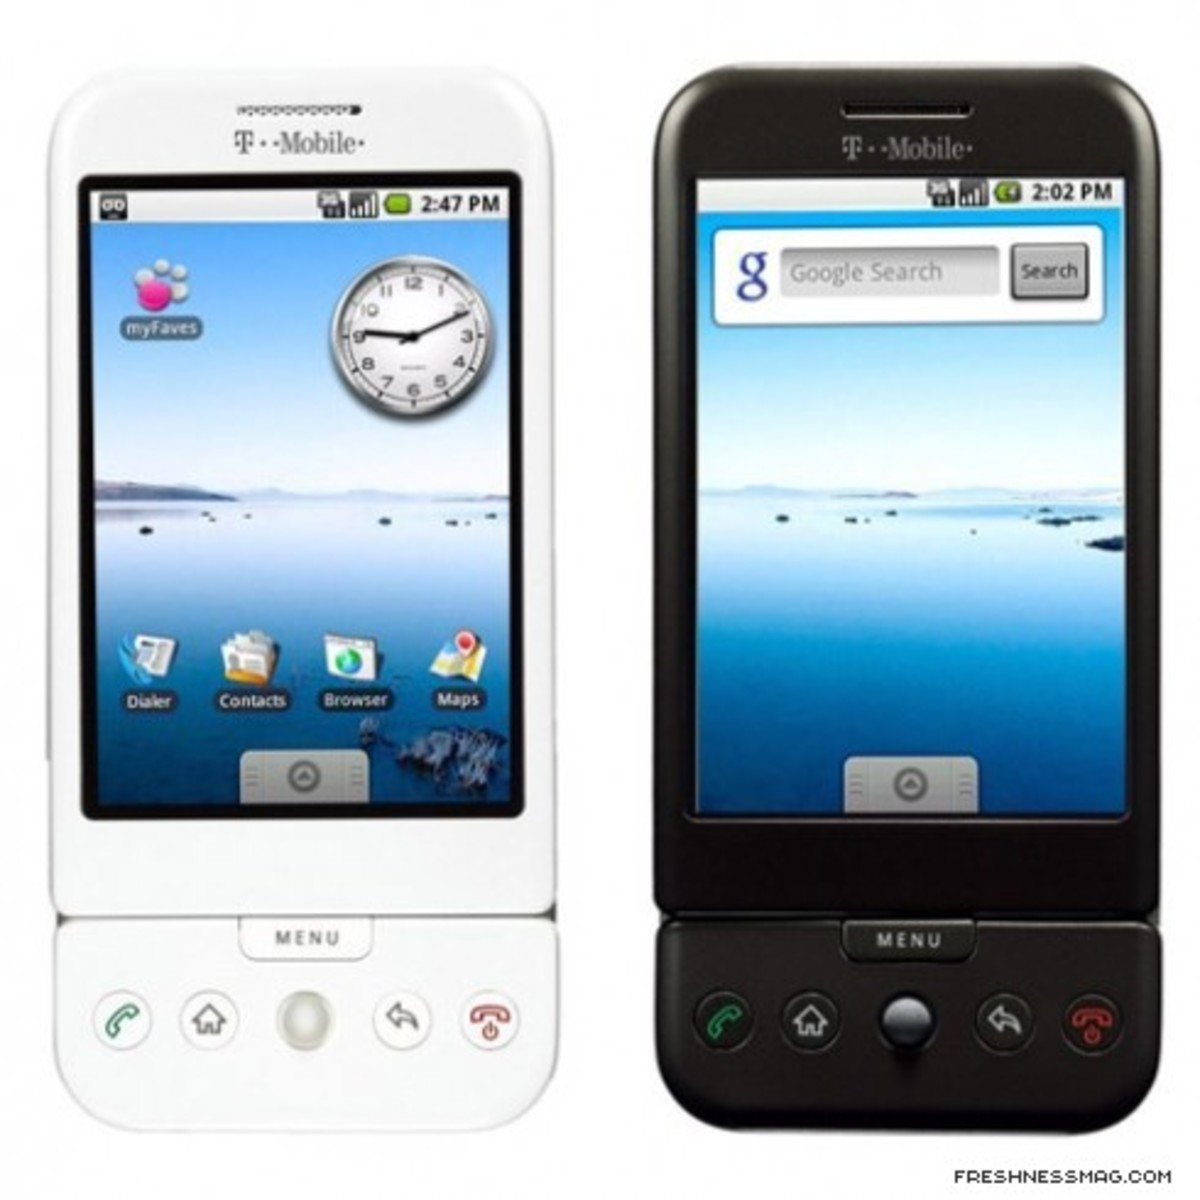 T-Mobile HTC G1 with Google Android